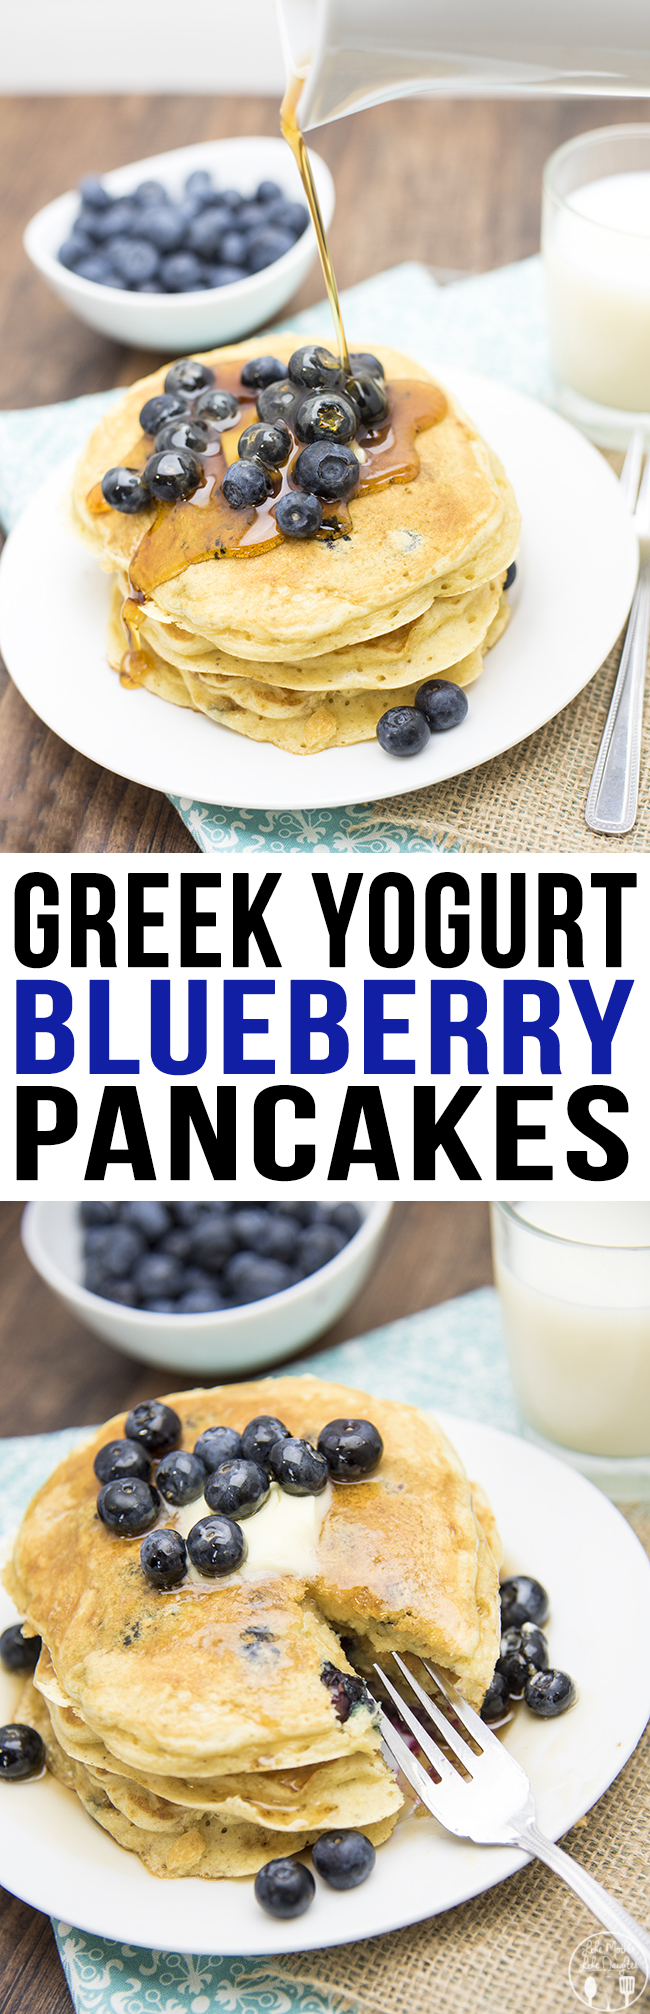 These greek yogurt blueberry pancakes are packed full of blueberries ...